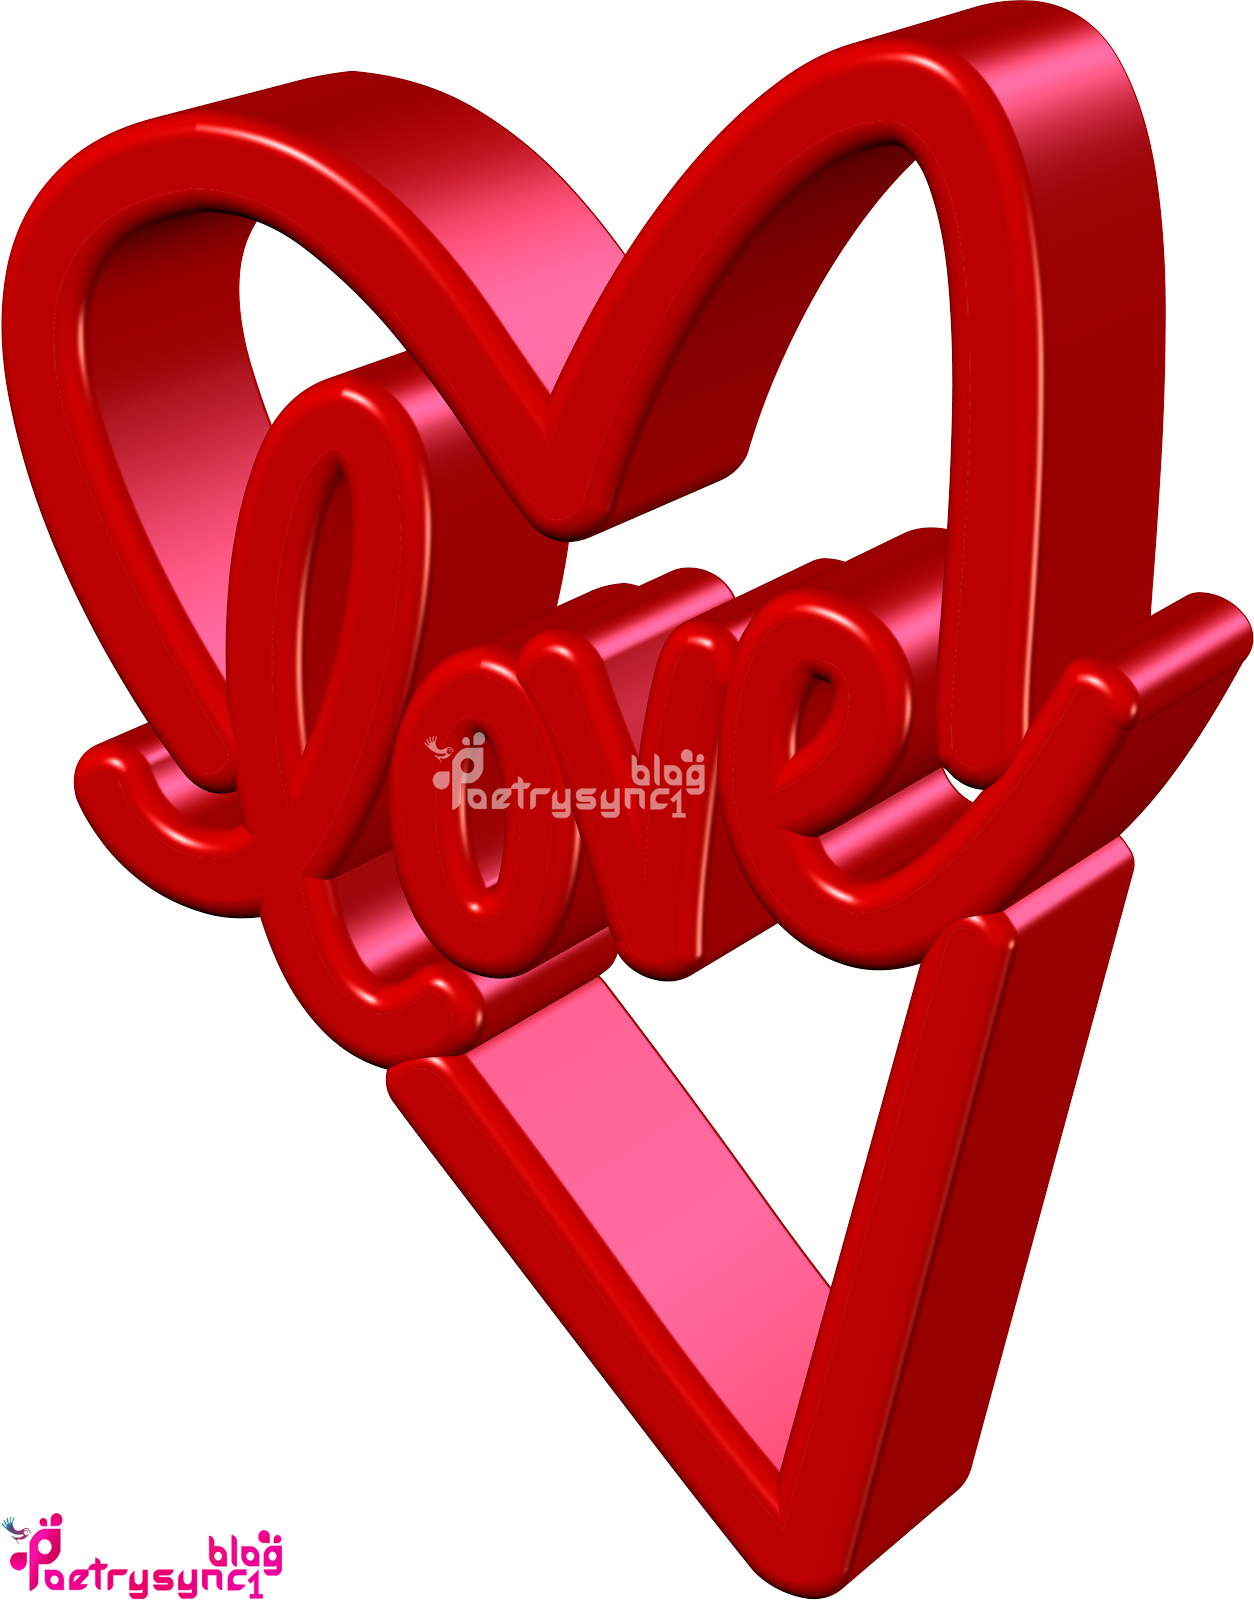 Amazing Wallpaper Love English - Love-3D-Wallpaper-In-Red-Colour-By-Poetrysync1  Collection_591329.png